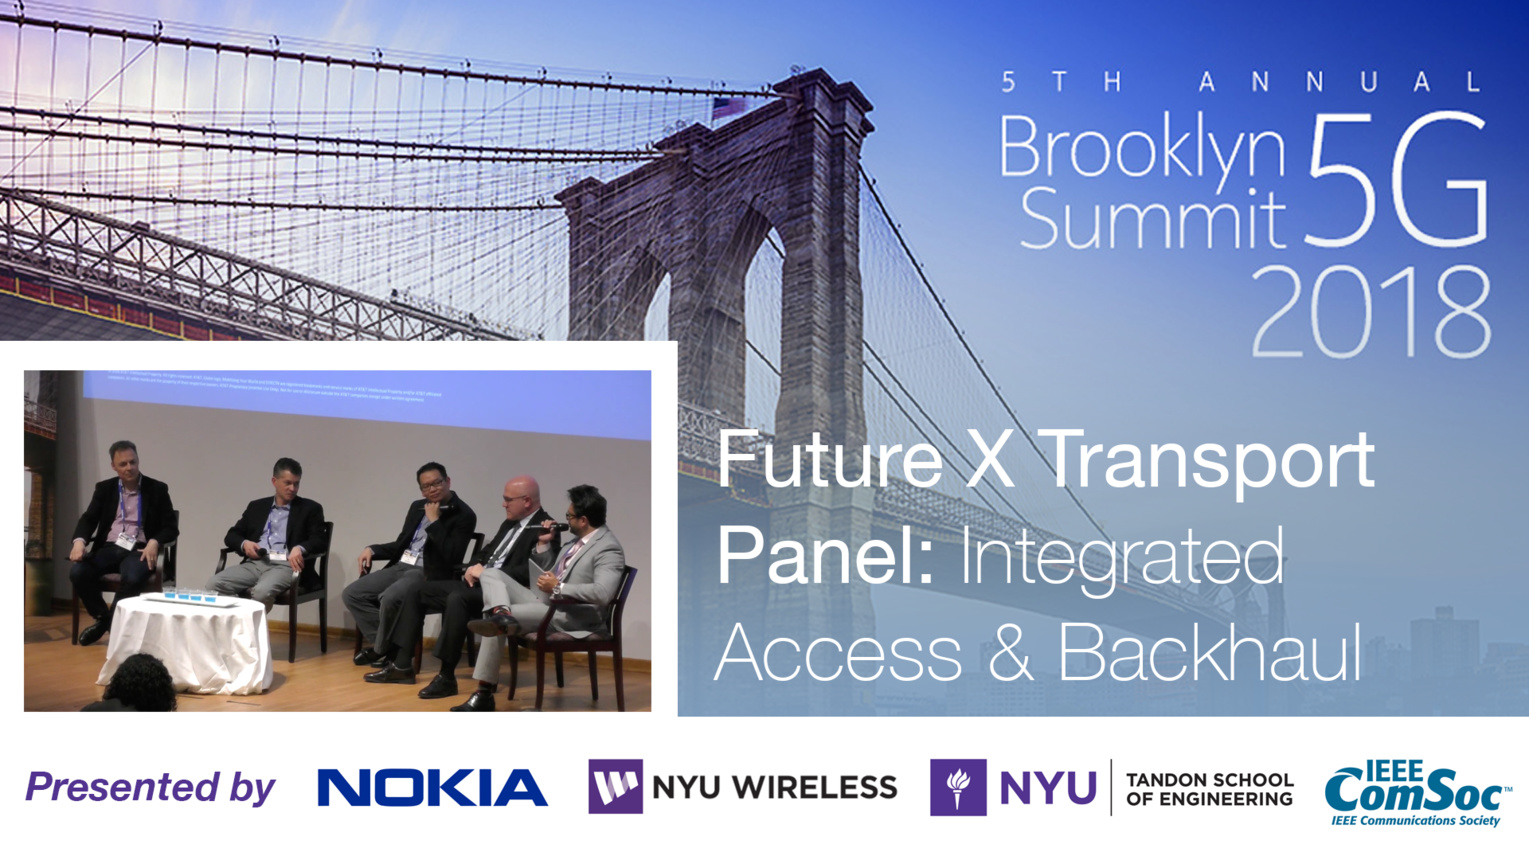 Integrated Access and Backhaul - Future X Transport Panel - Brooklyn 5G Summit 2018